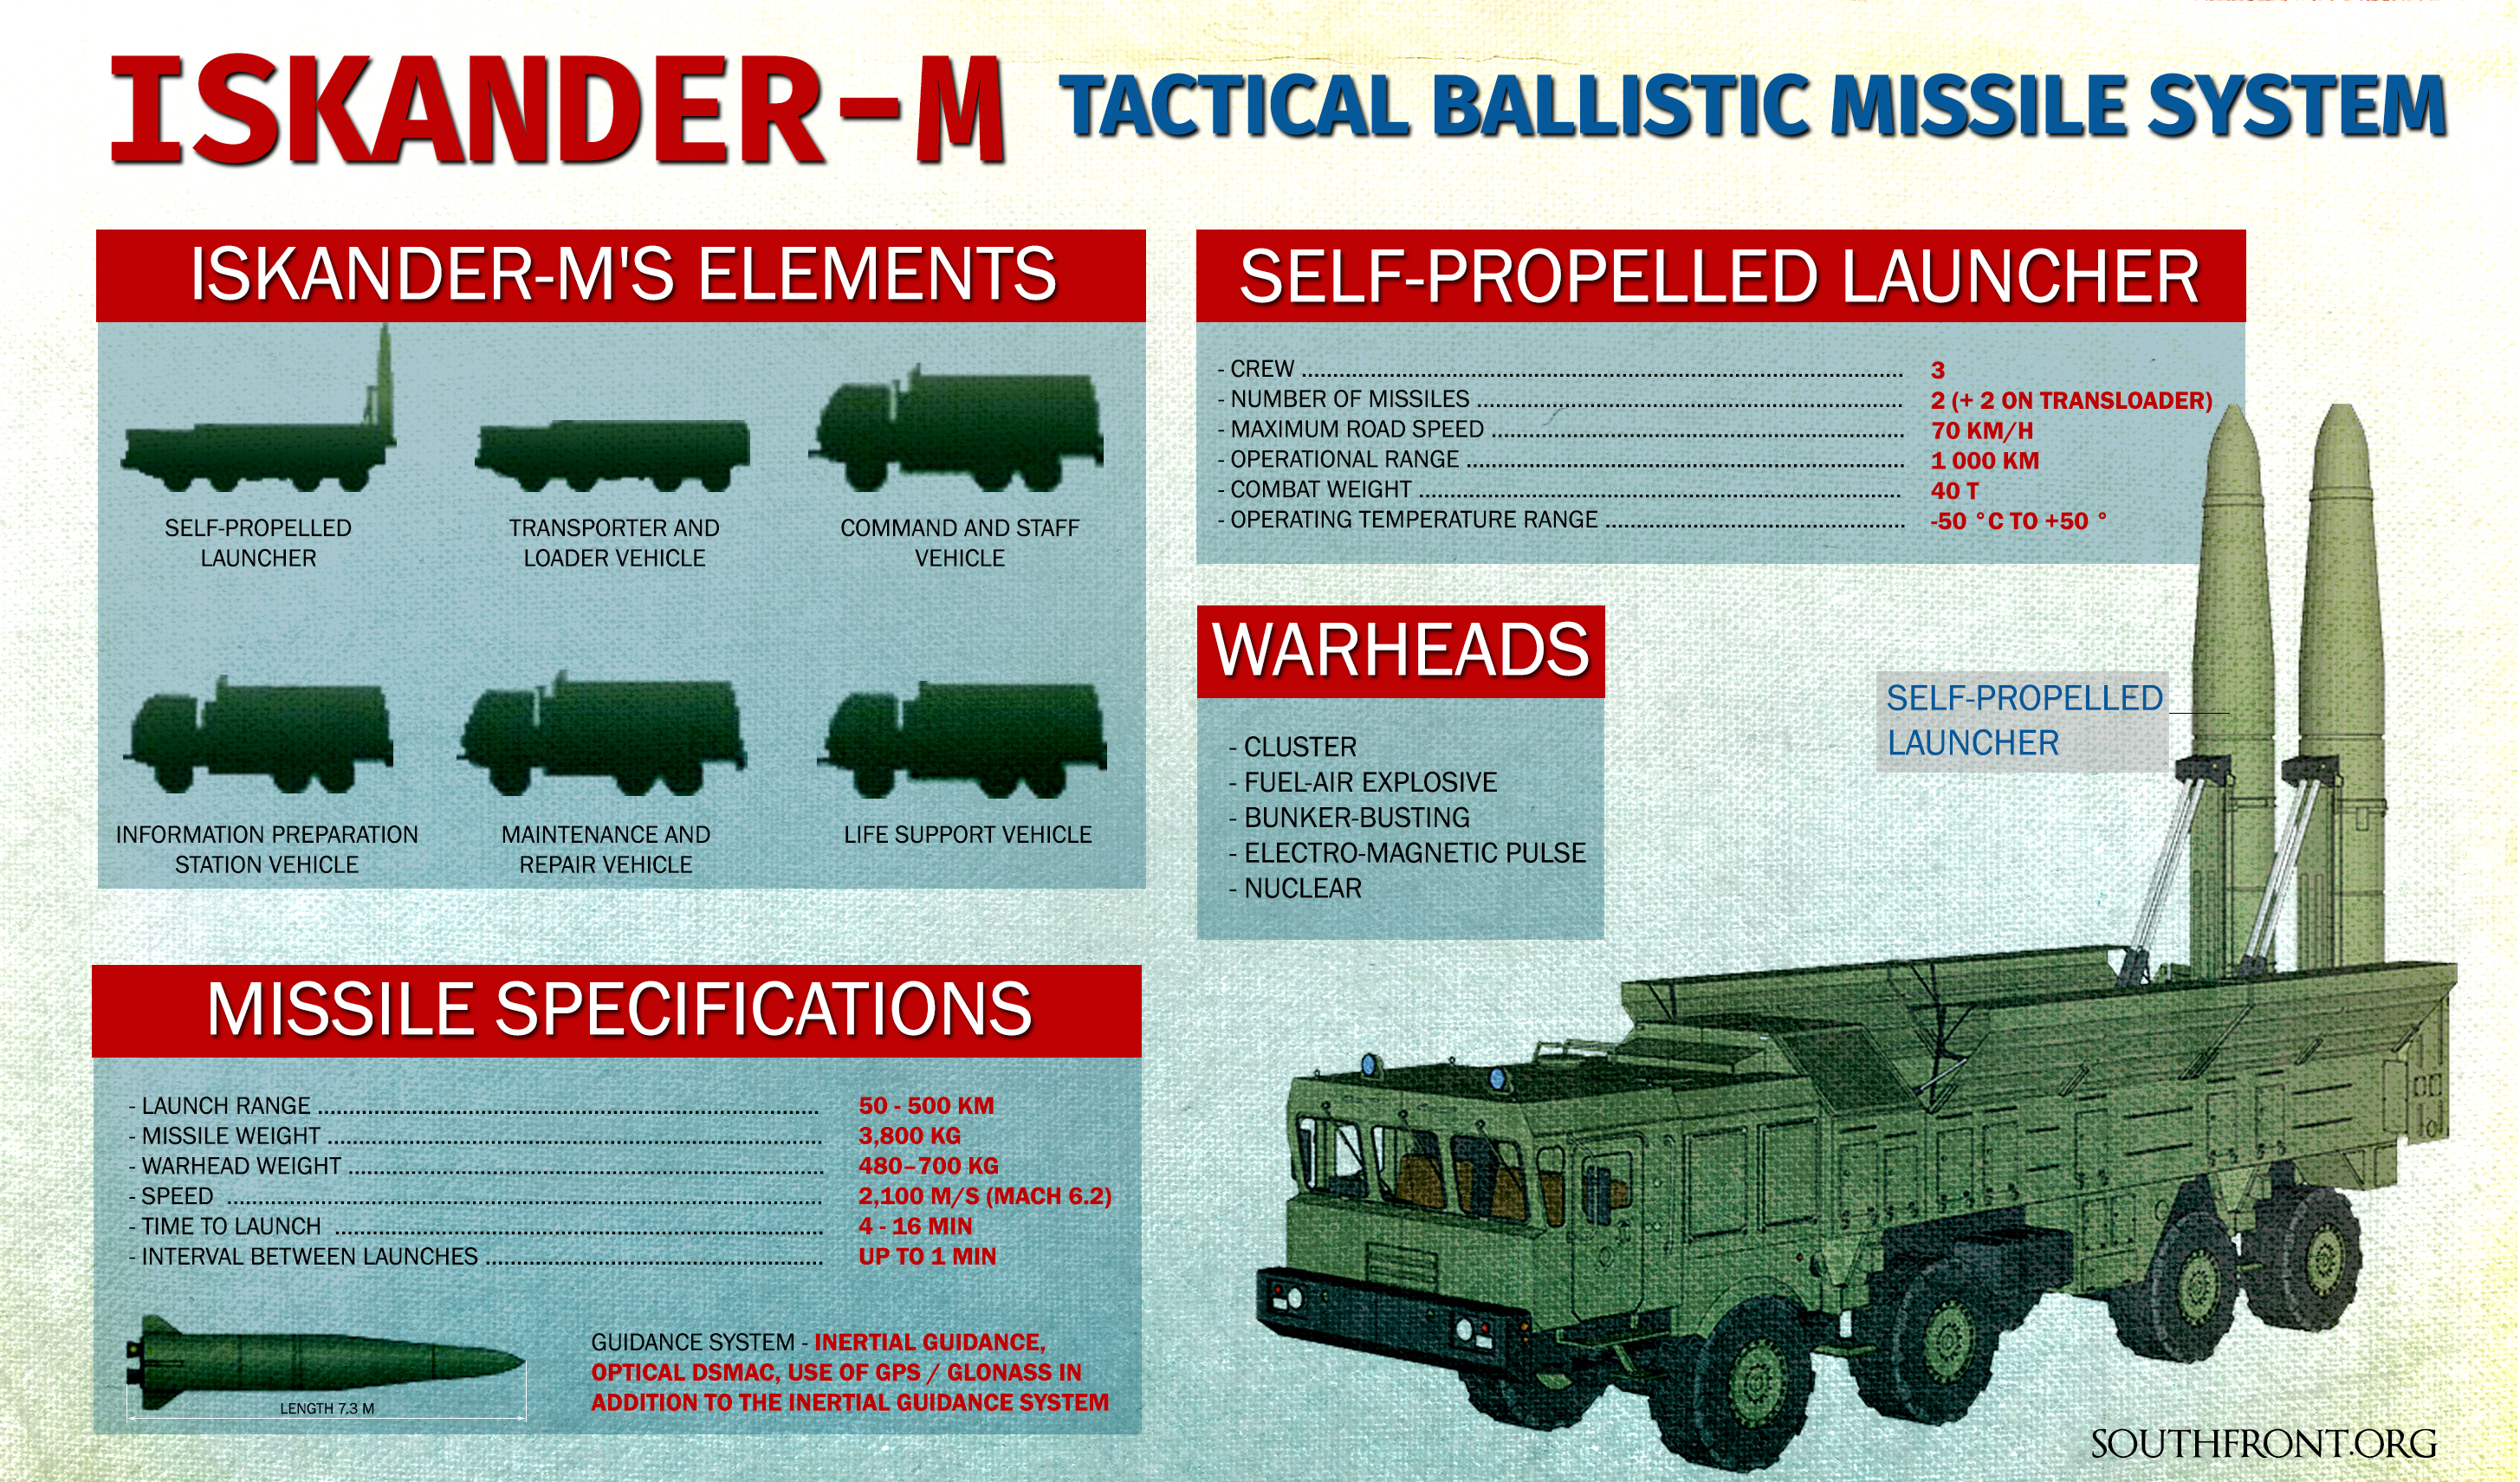 tactical nukes in syria with Russia Is Preparing For Permanent Deployment Of Iskander M Missile Systems In Kaliningrad Media on Premetive Strike Iran Wont Go Down Easy additionally Video Use Of Tactical Nukes Would Still Spell Full Blown Nuclear War Ex Us Defense Sec also 283764 Aviones F 16 Fighting Falcon further 2134484897196232003 as well Russia Is Preparing For Permanent Deployment Of Iskander M Missile Systems In Kaliningrad Media.